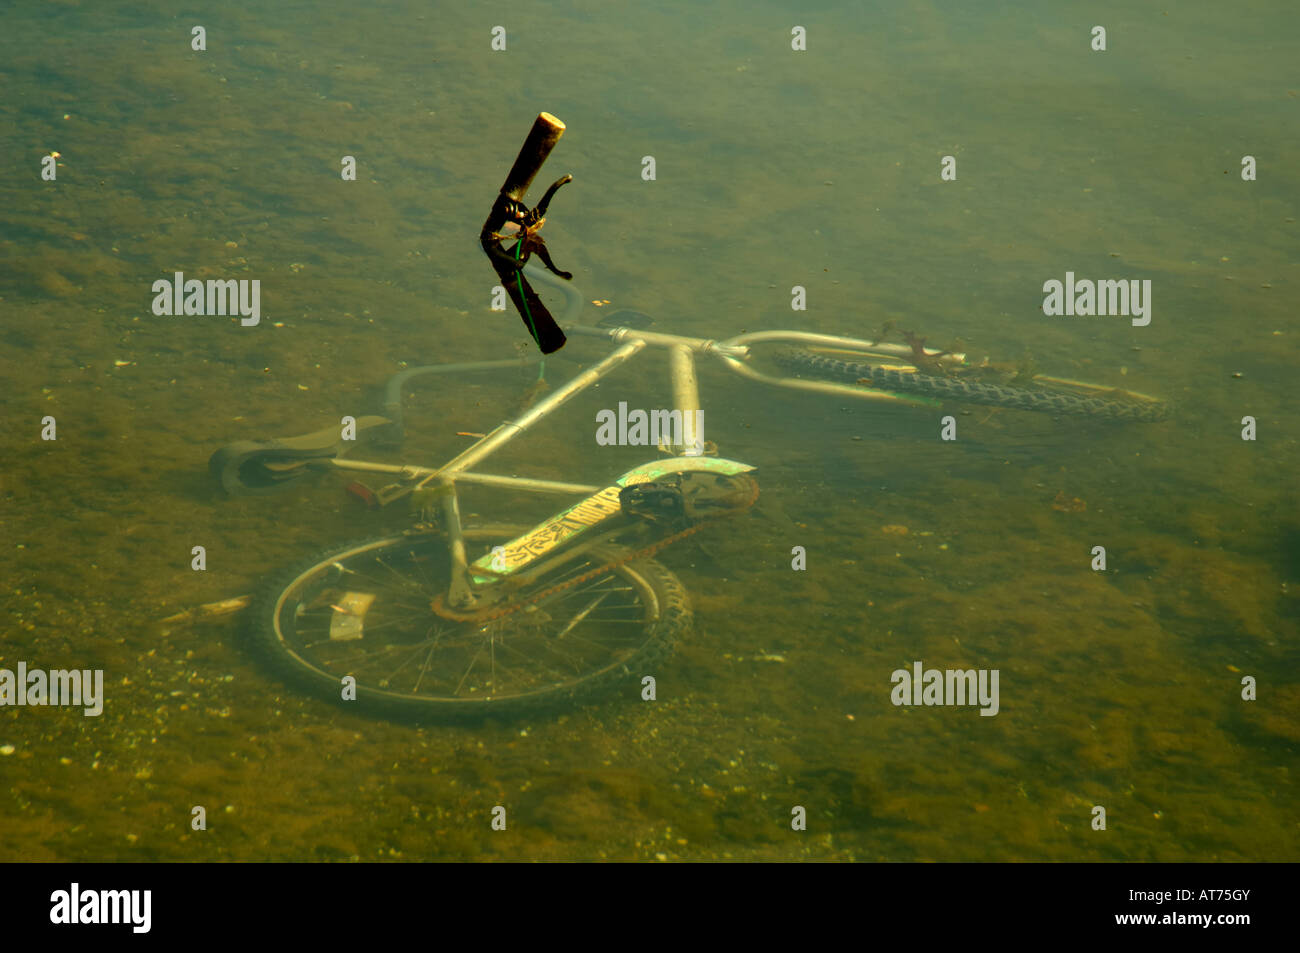 This bicycle was stolen and later found underwater in Holston River